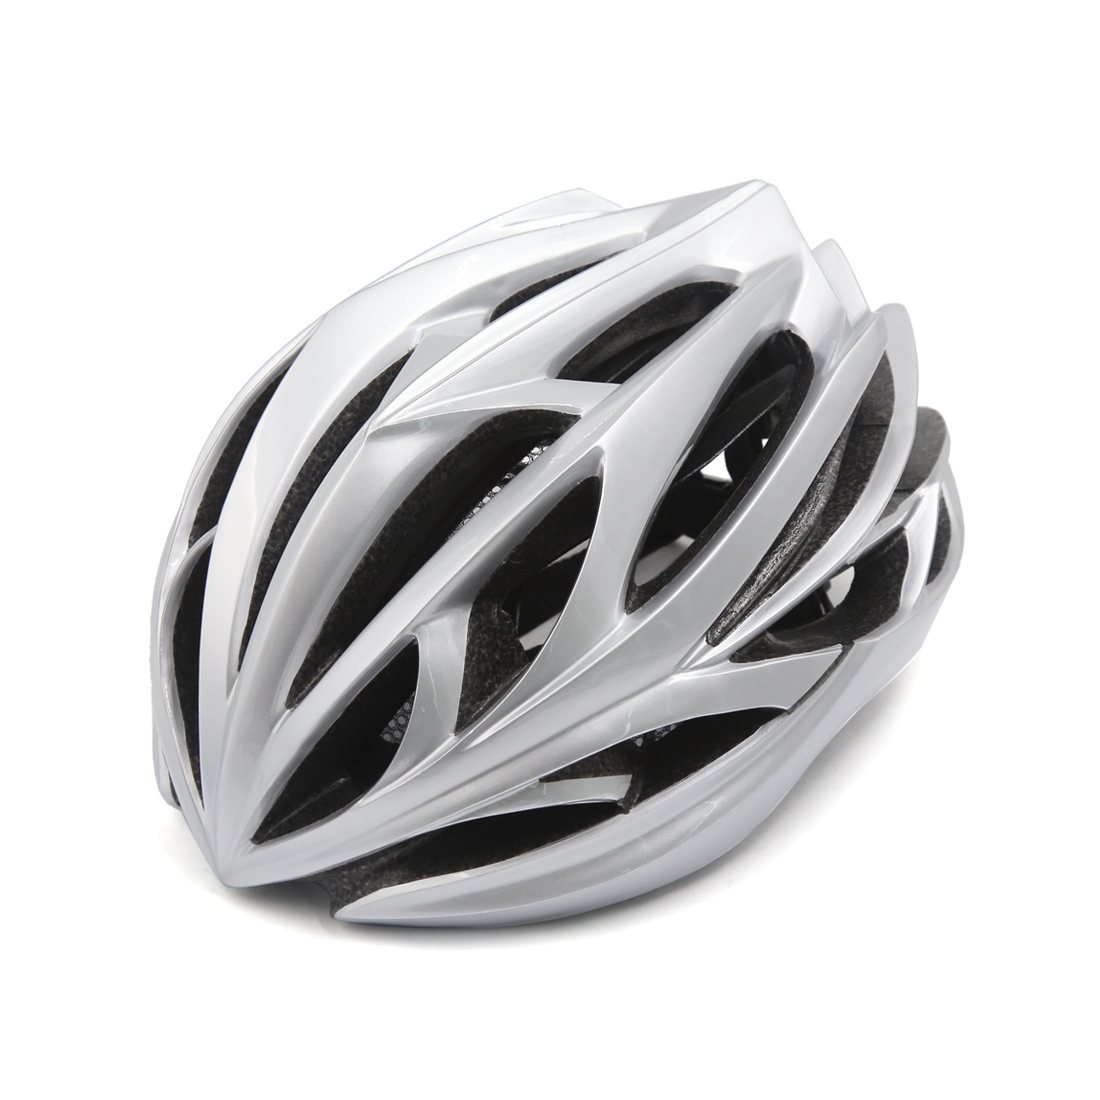 Unisex Adult MTB Mountain Bike Bicycle Cycling Shockproof Helmet Sliver Tone